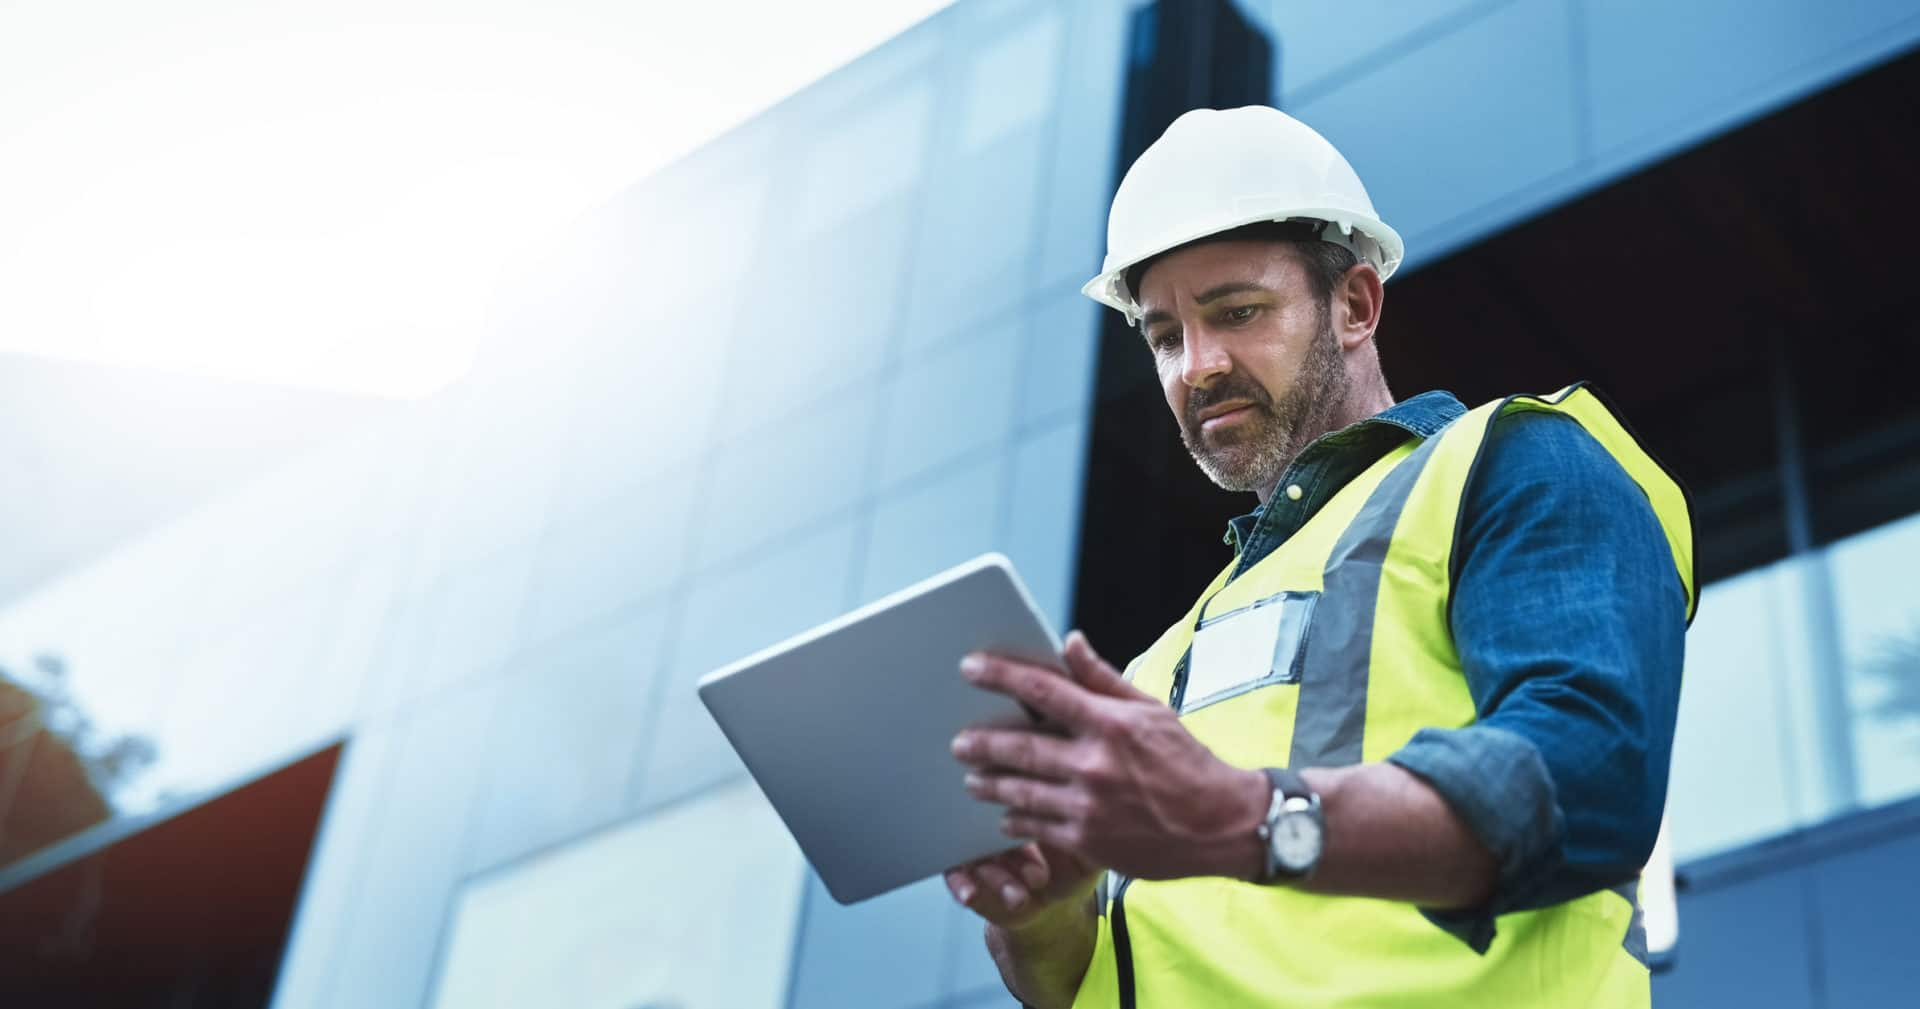 Why Do Construction Companies Need Managed IT Services?